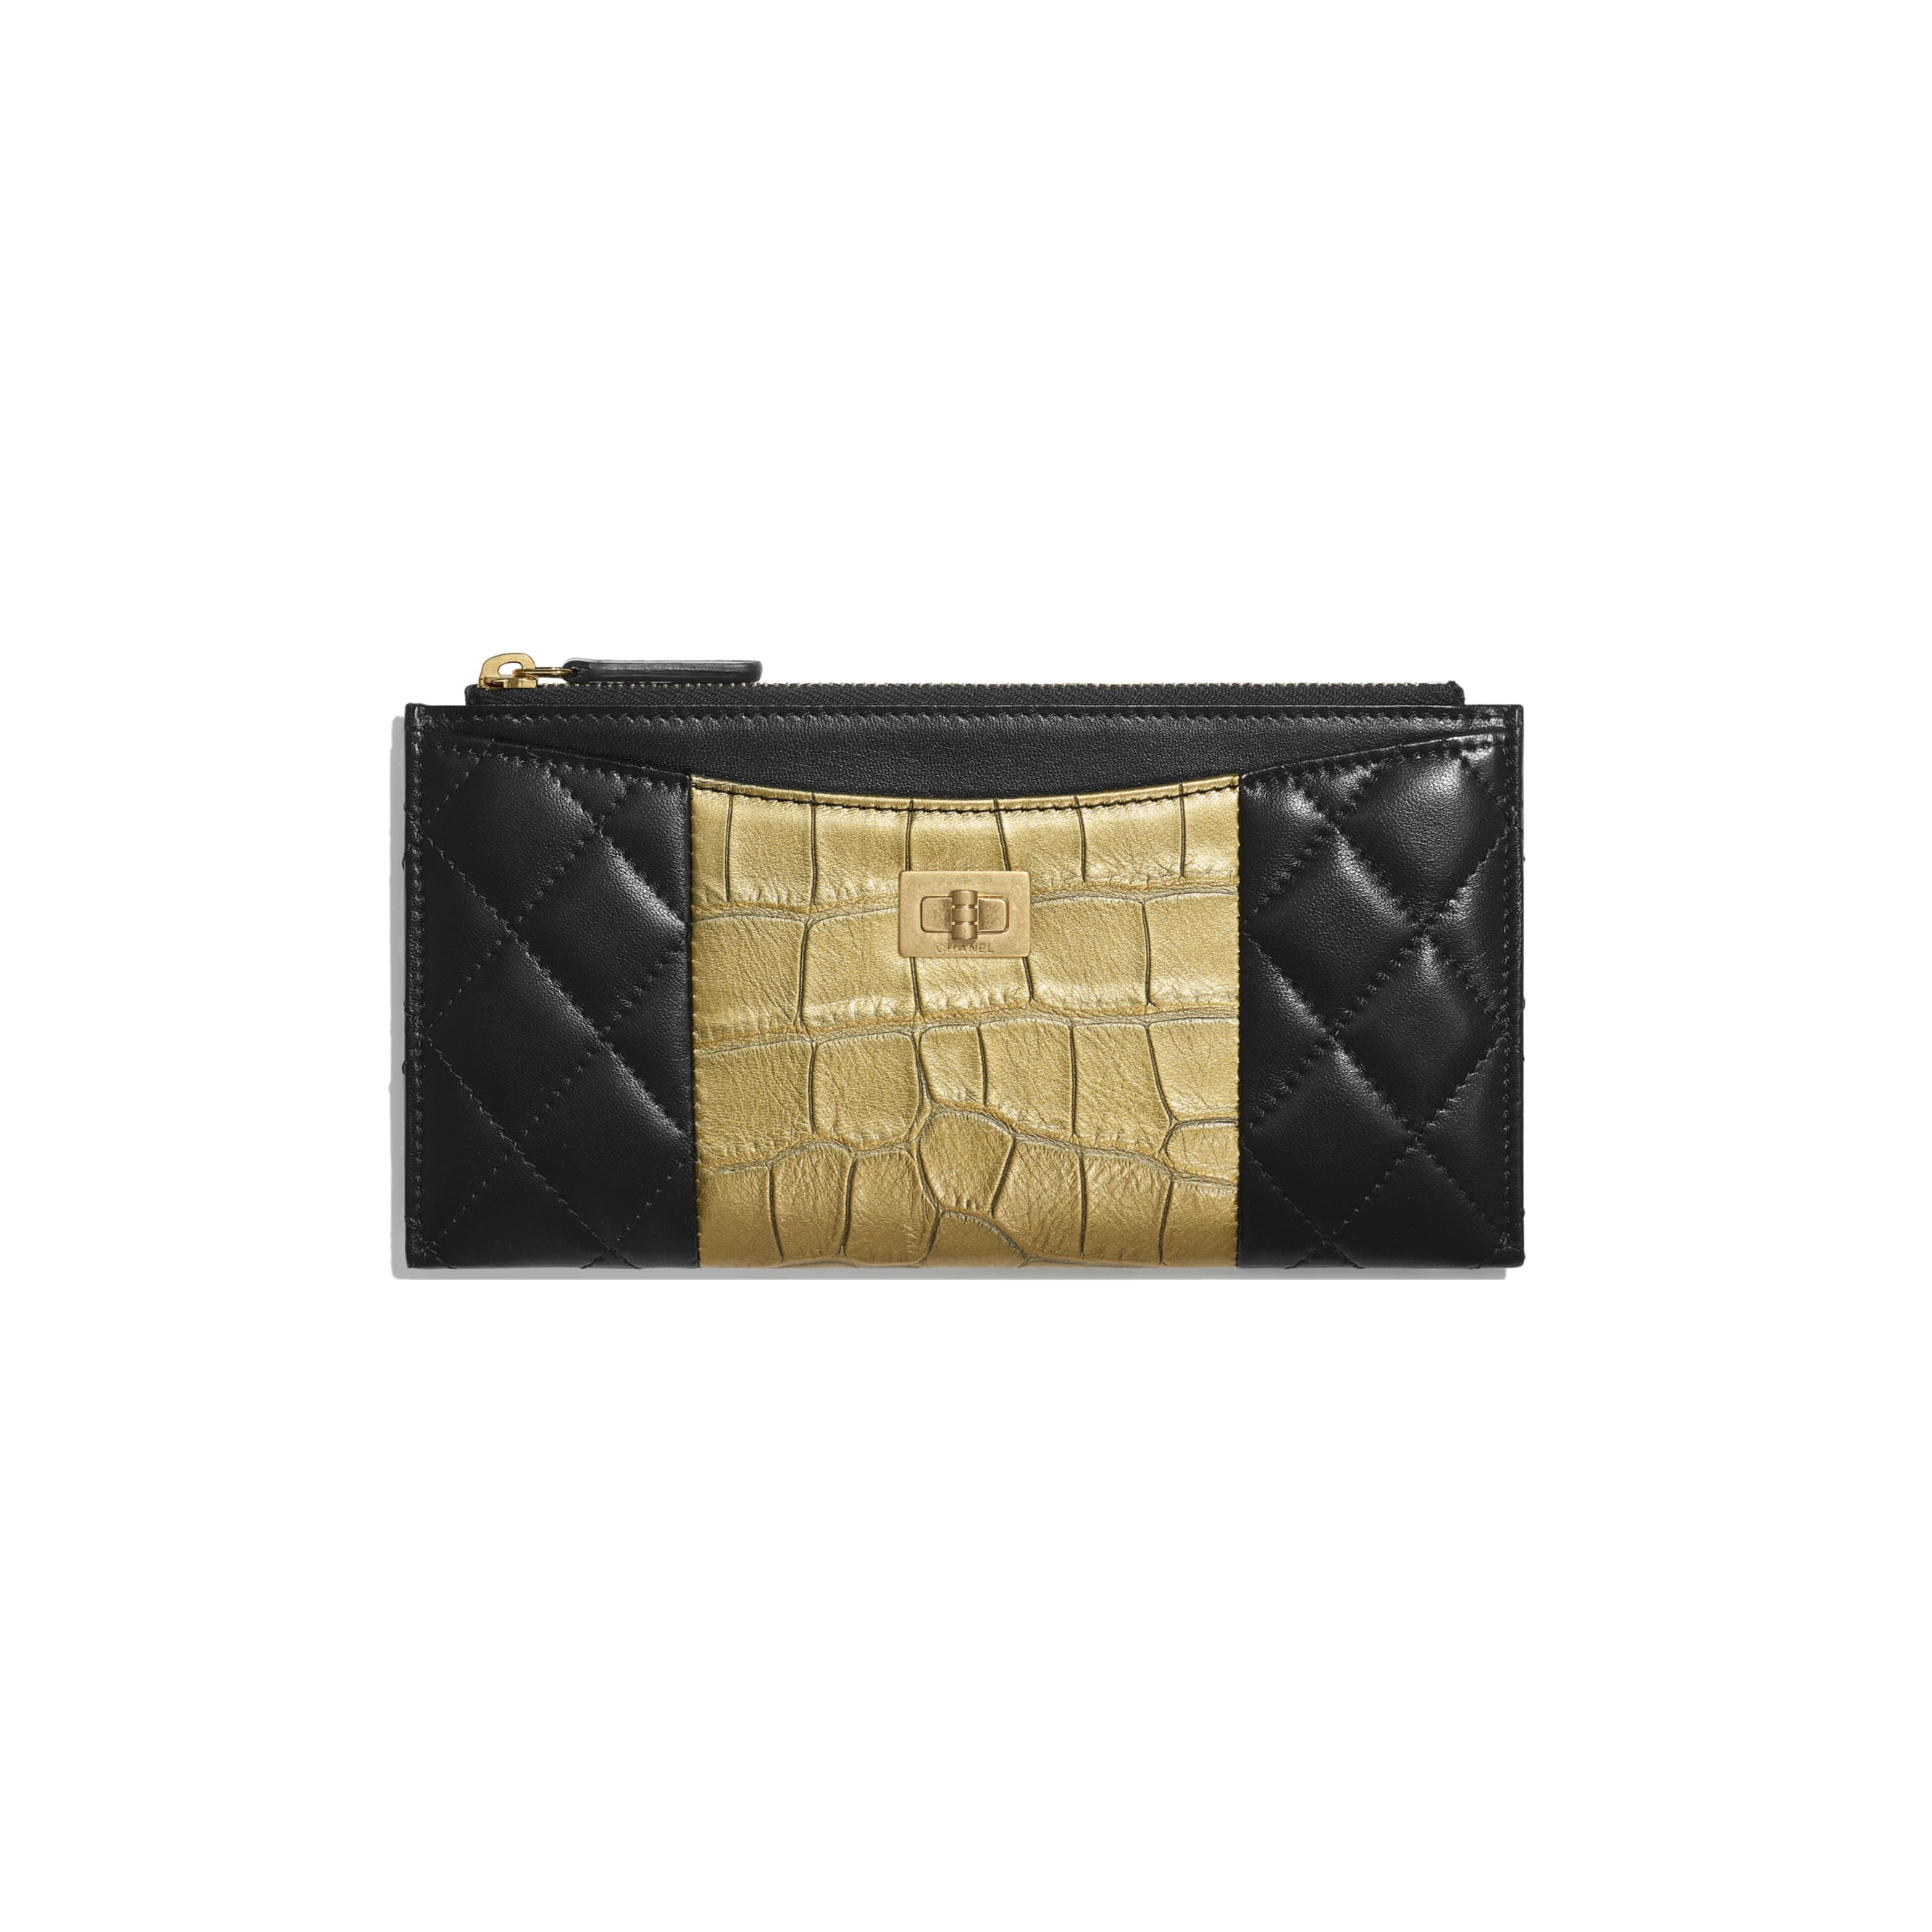 2.55 Pouch - Black & Gold - Lambskin, Crocodile Embossed Calfskin & Gold-Tone Metal - Default view - see standard sized version